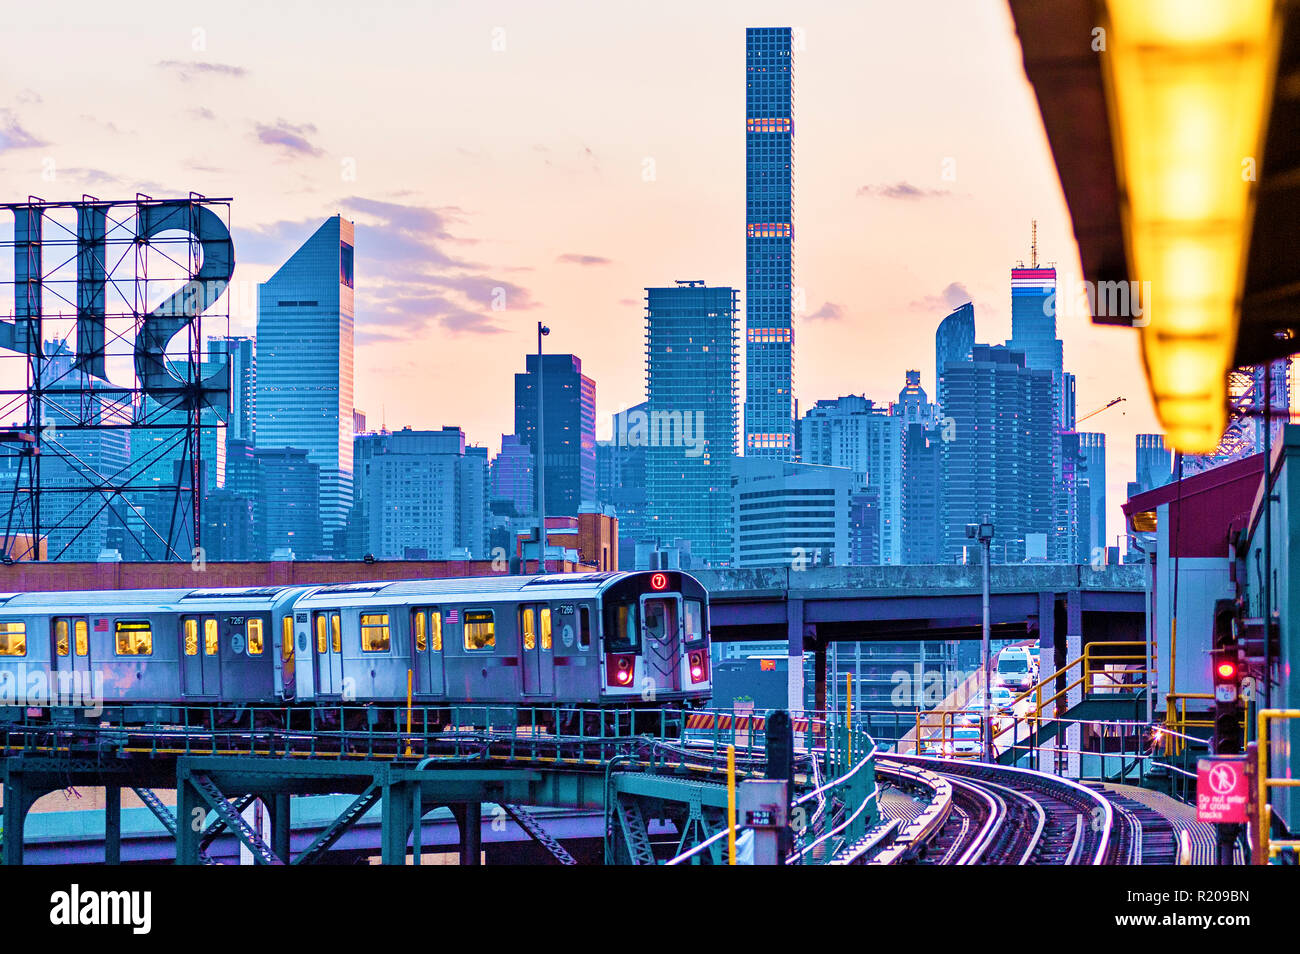 No. 7 Subway Train Long Island City, Queens, Queensboro Plaza, New York City. - Stock Image